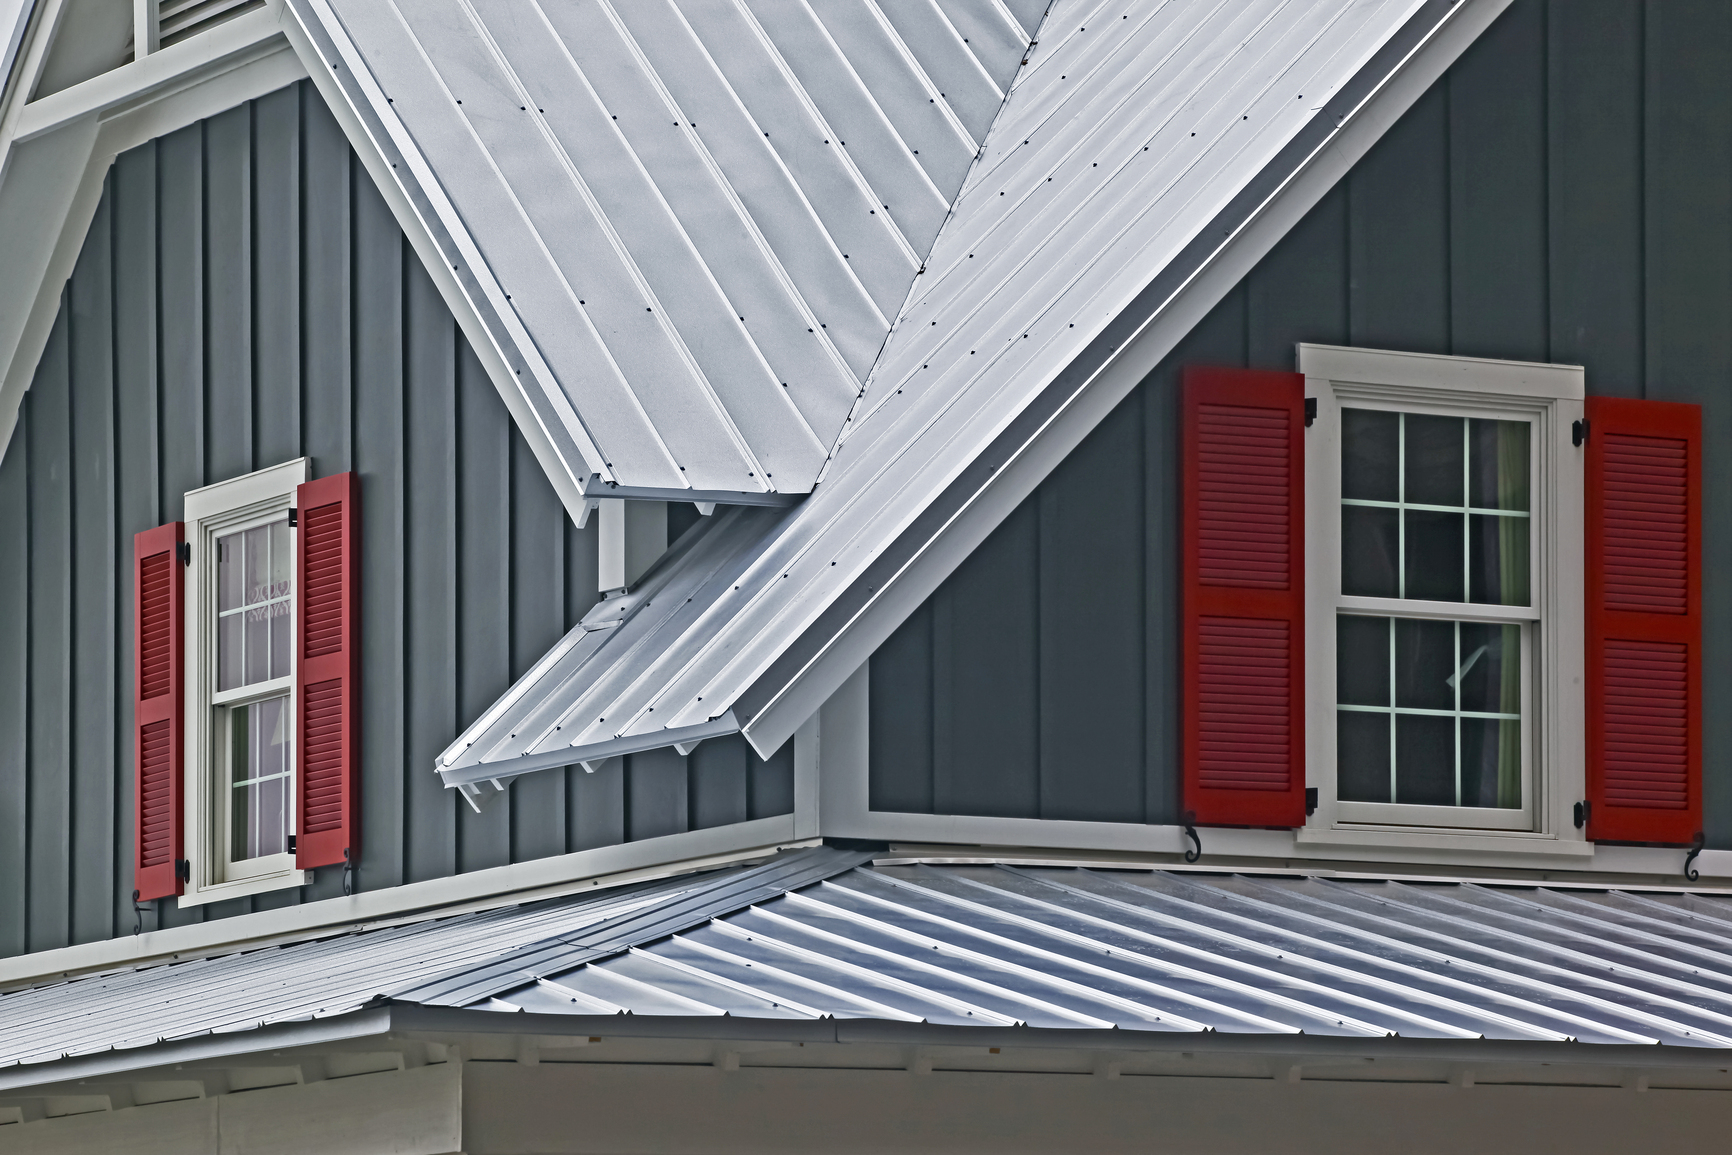 Why Are Metal Roofs Perfect For Grays Harbor County Homes? Types Of Metal Roofs On Mobile Homes on mobile home metal roof construction, mobile home metal roof systems, mobile home metal roofing, mobile home metal roof replacement, mobile home metal roof installation, mobile home metal doors,